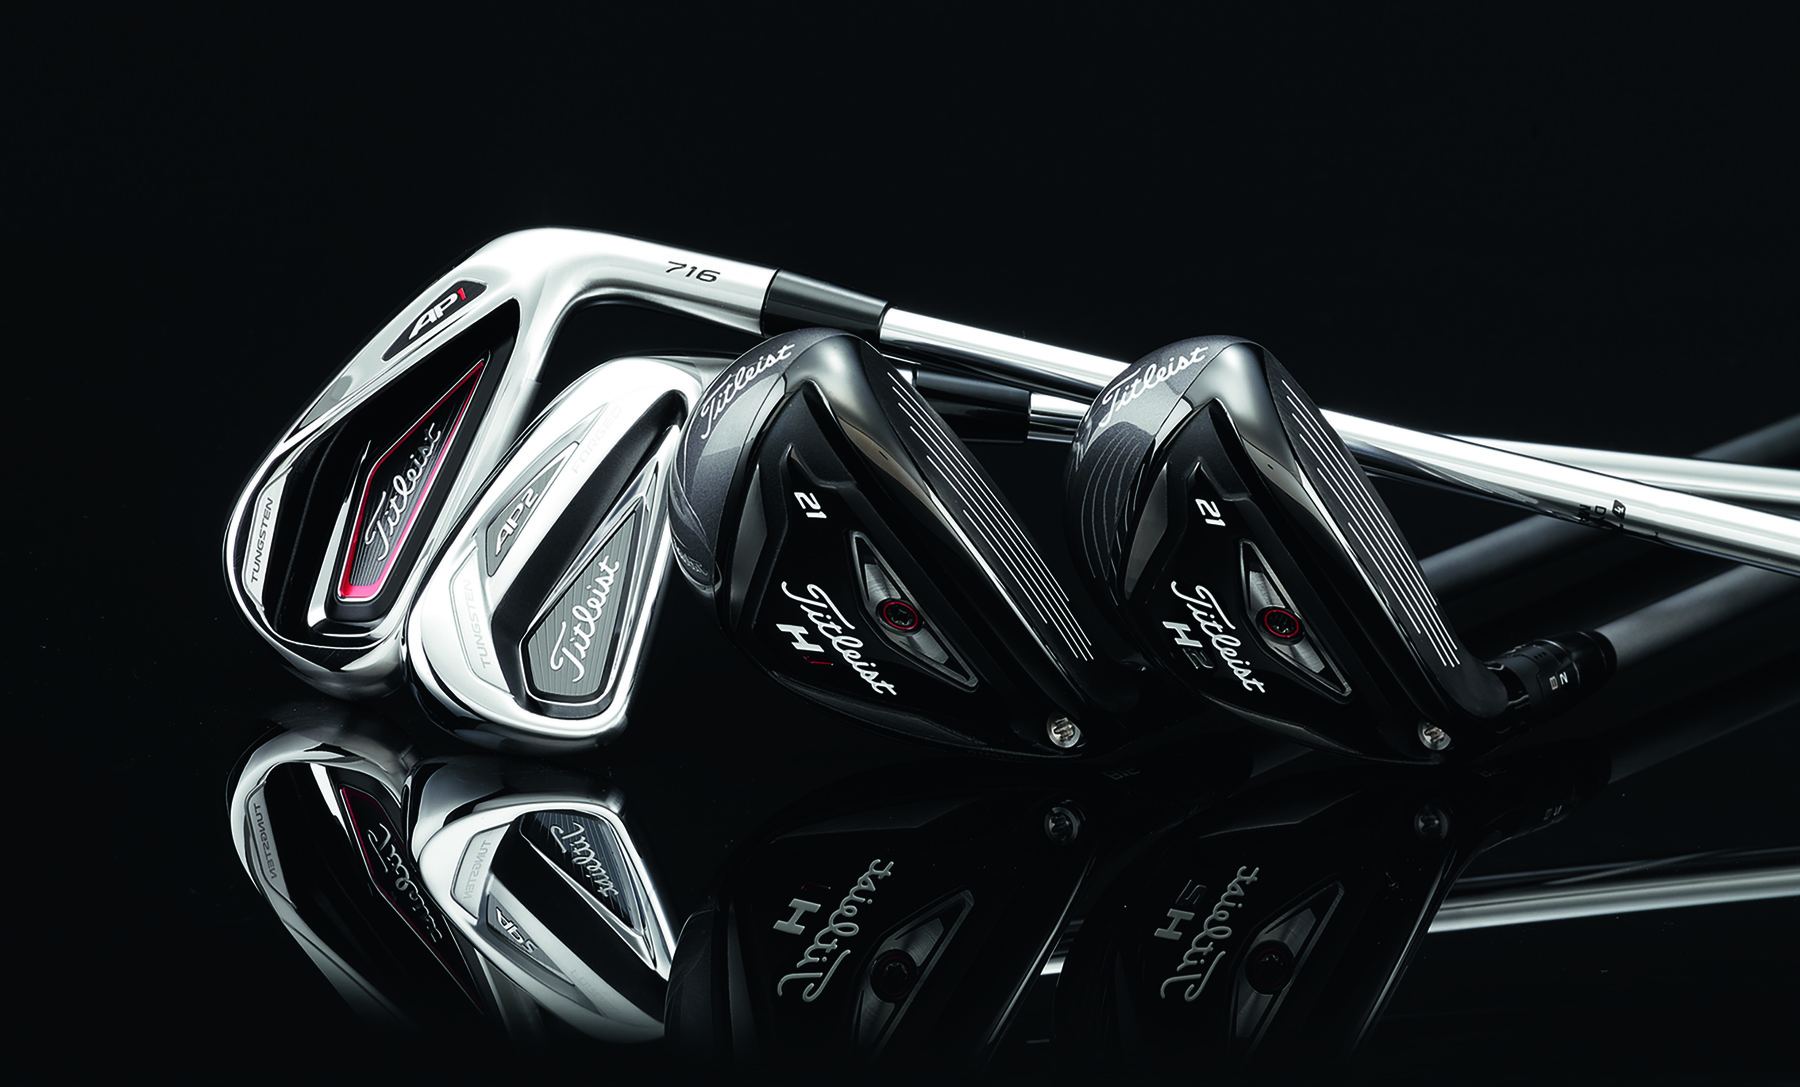 The new Titleist 716 AP1 & AP2 irons and 816 hybrids